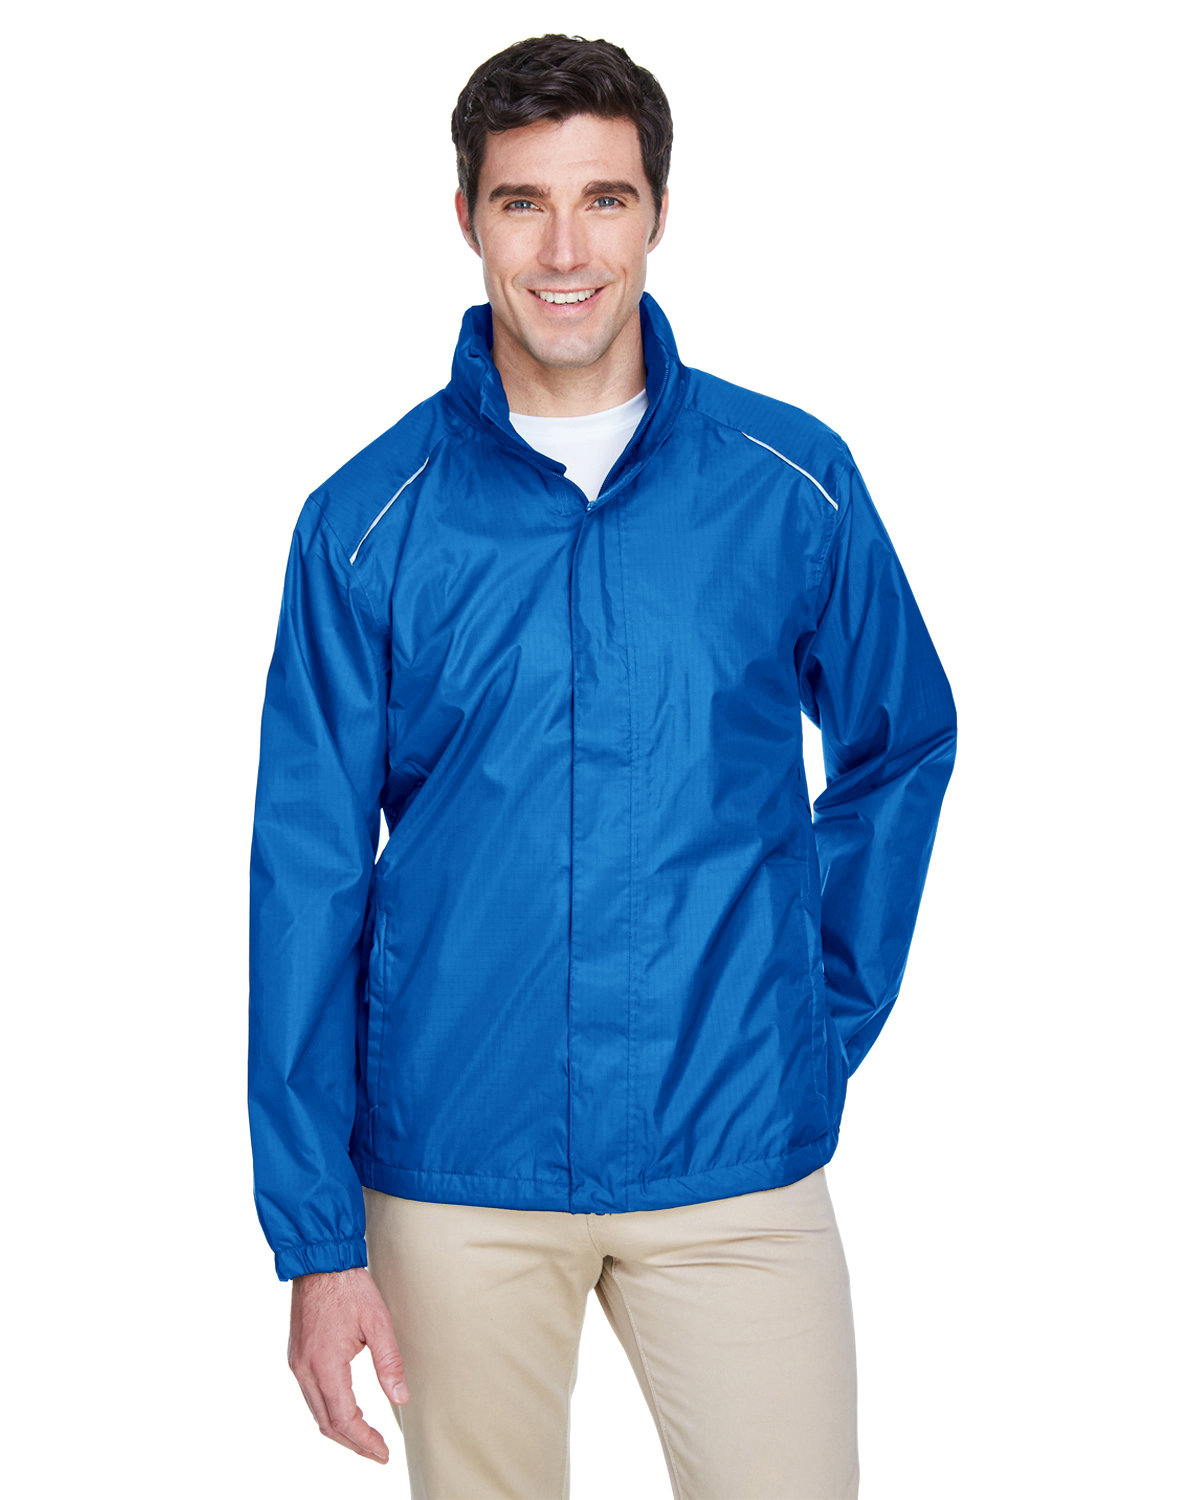 Core 365 Men's Climate Seam-Sealed Lightweight Variegated Ripstop Jacket TRUE ROYAL